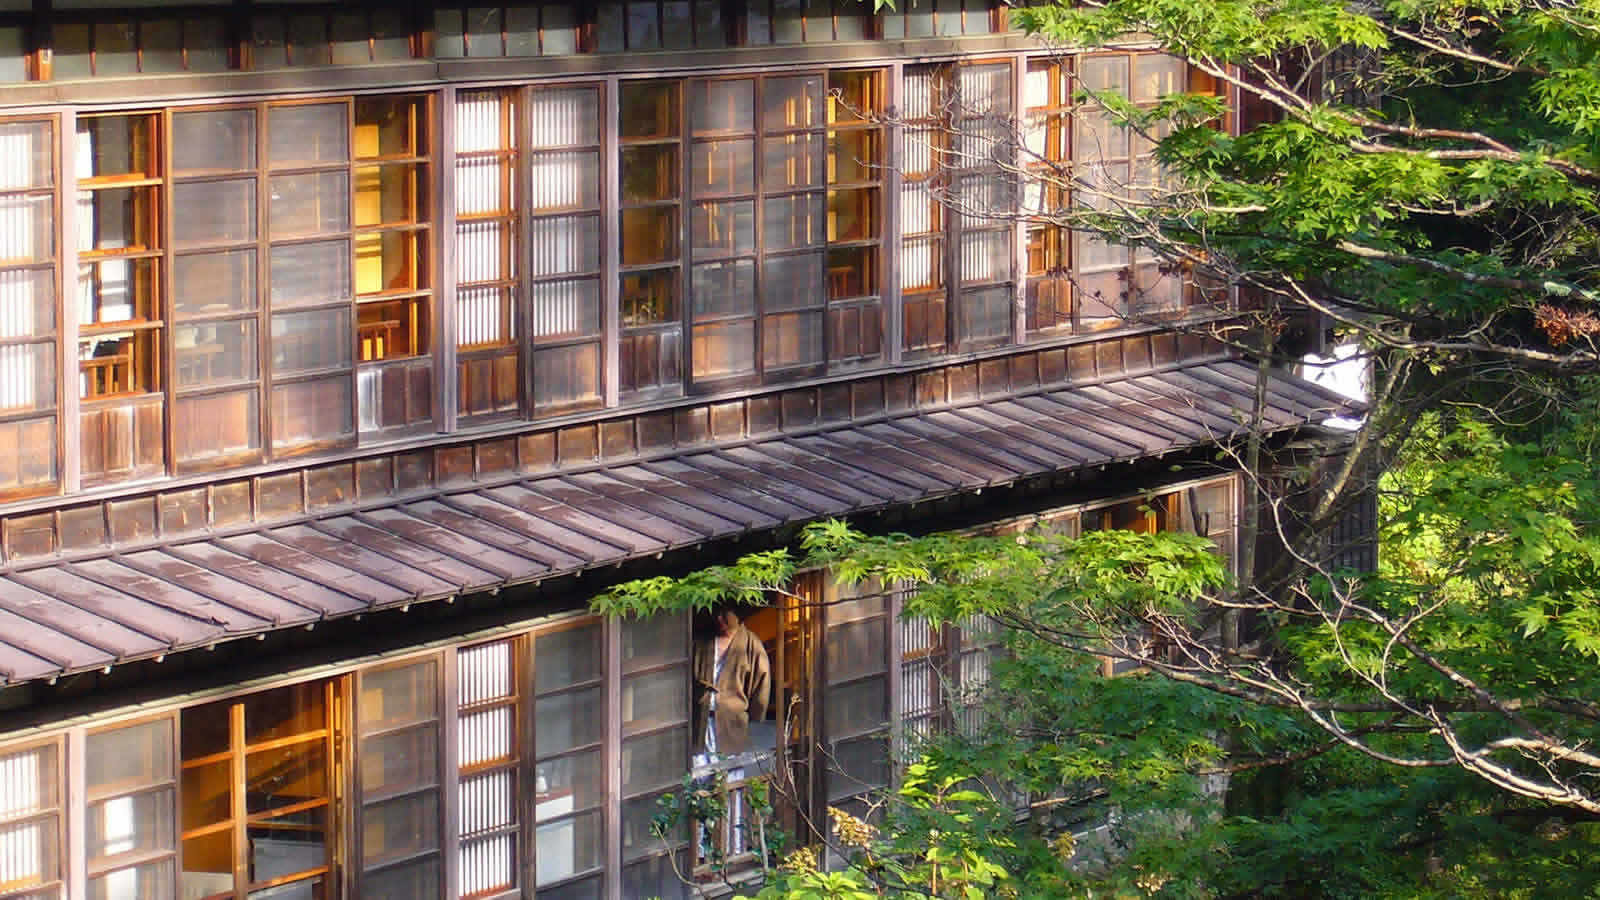 8 hot springs where you can enjoy toji onsen therapy in Japan